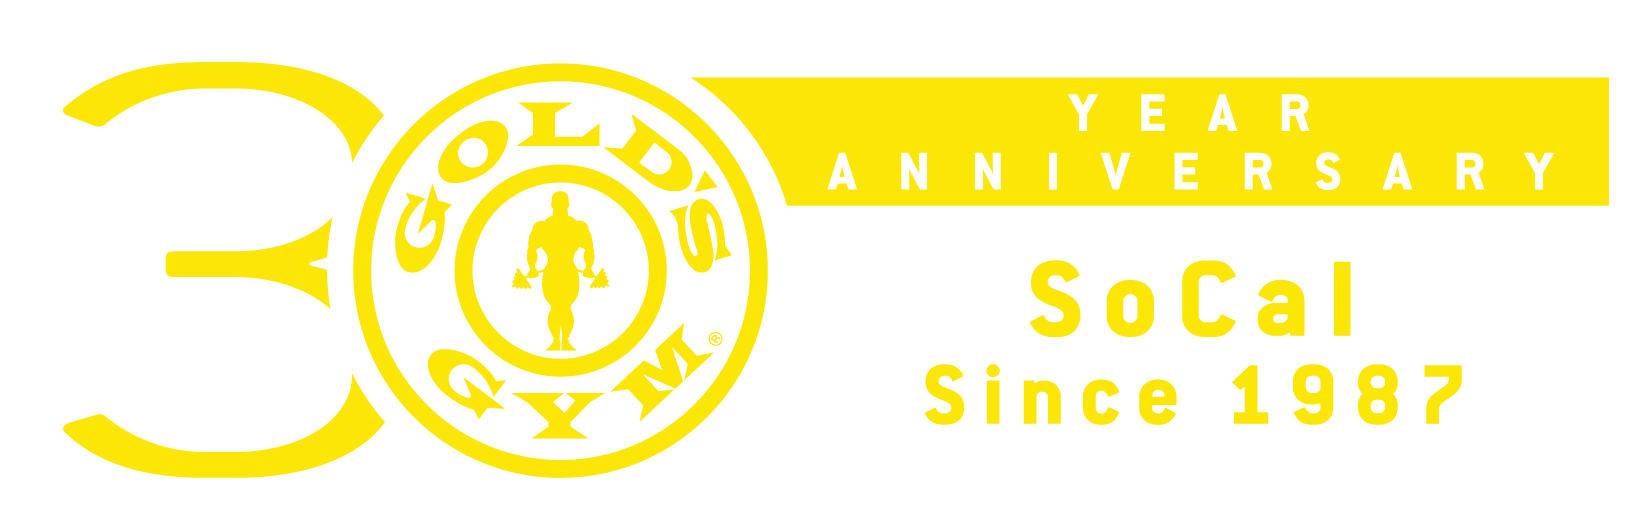 193665_53194_GGLA_SEP17_30YearAnniversary_Logo_Yellow.png